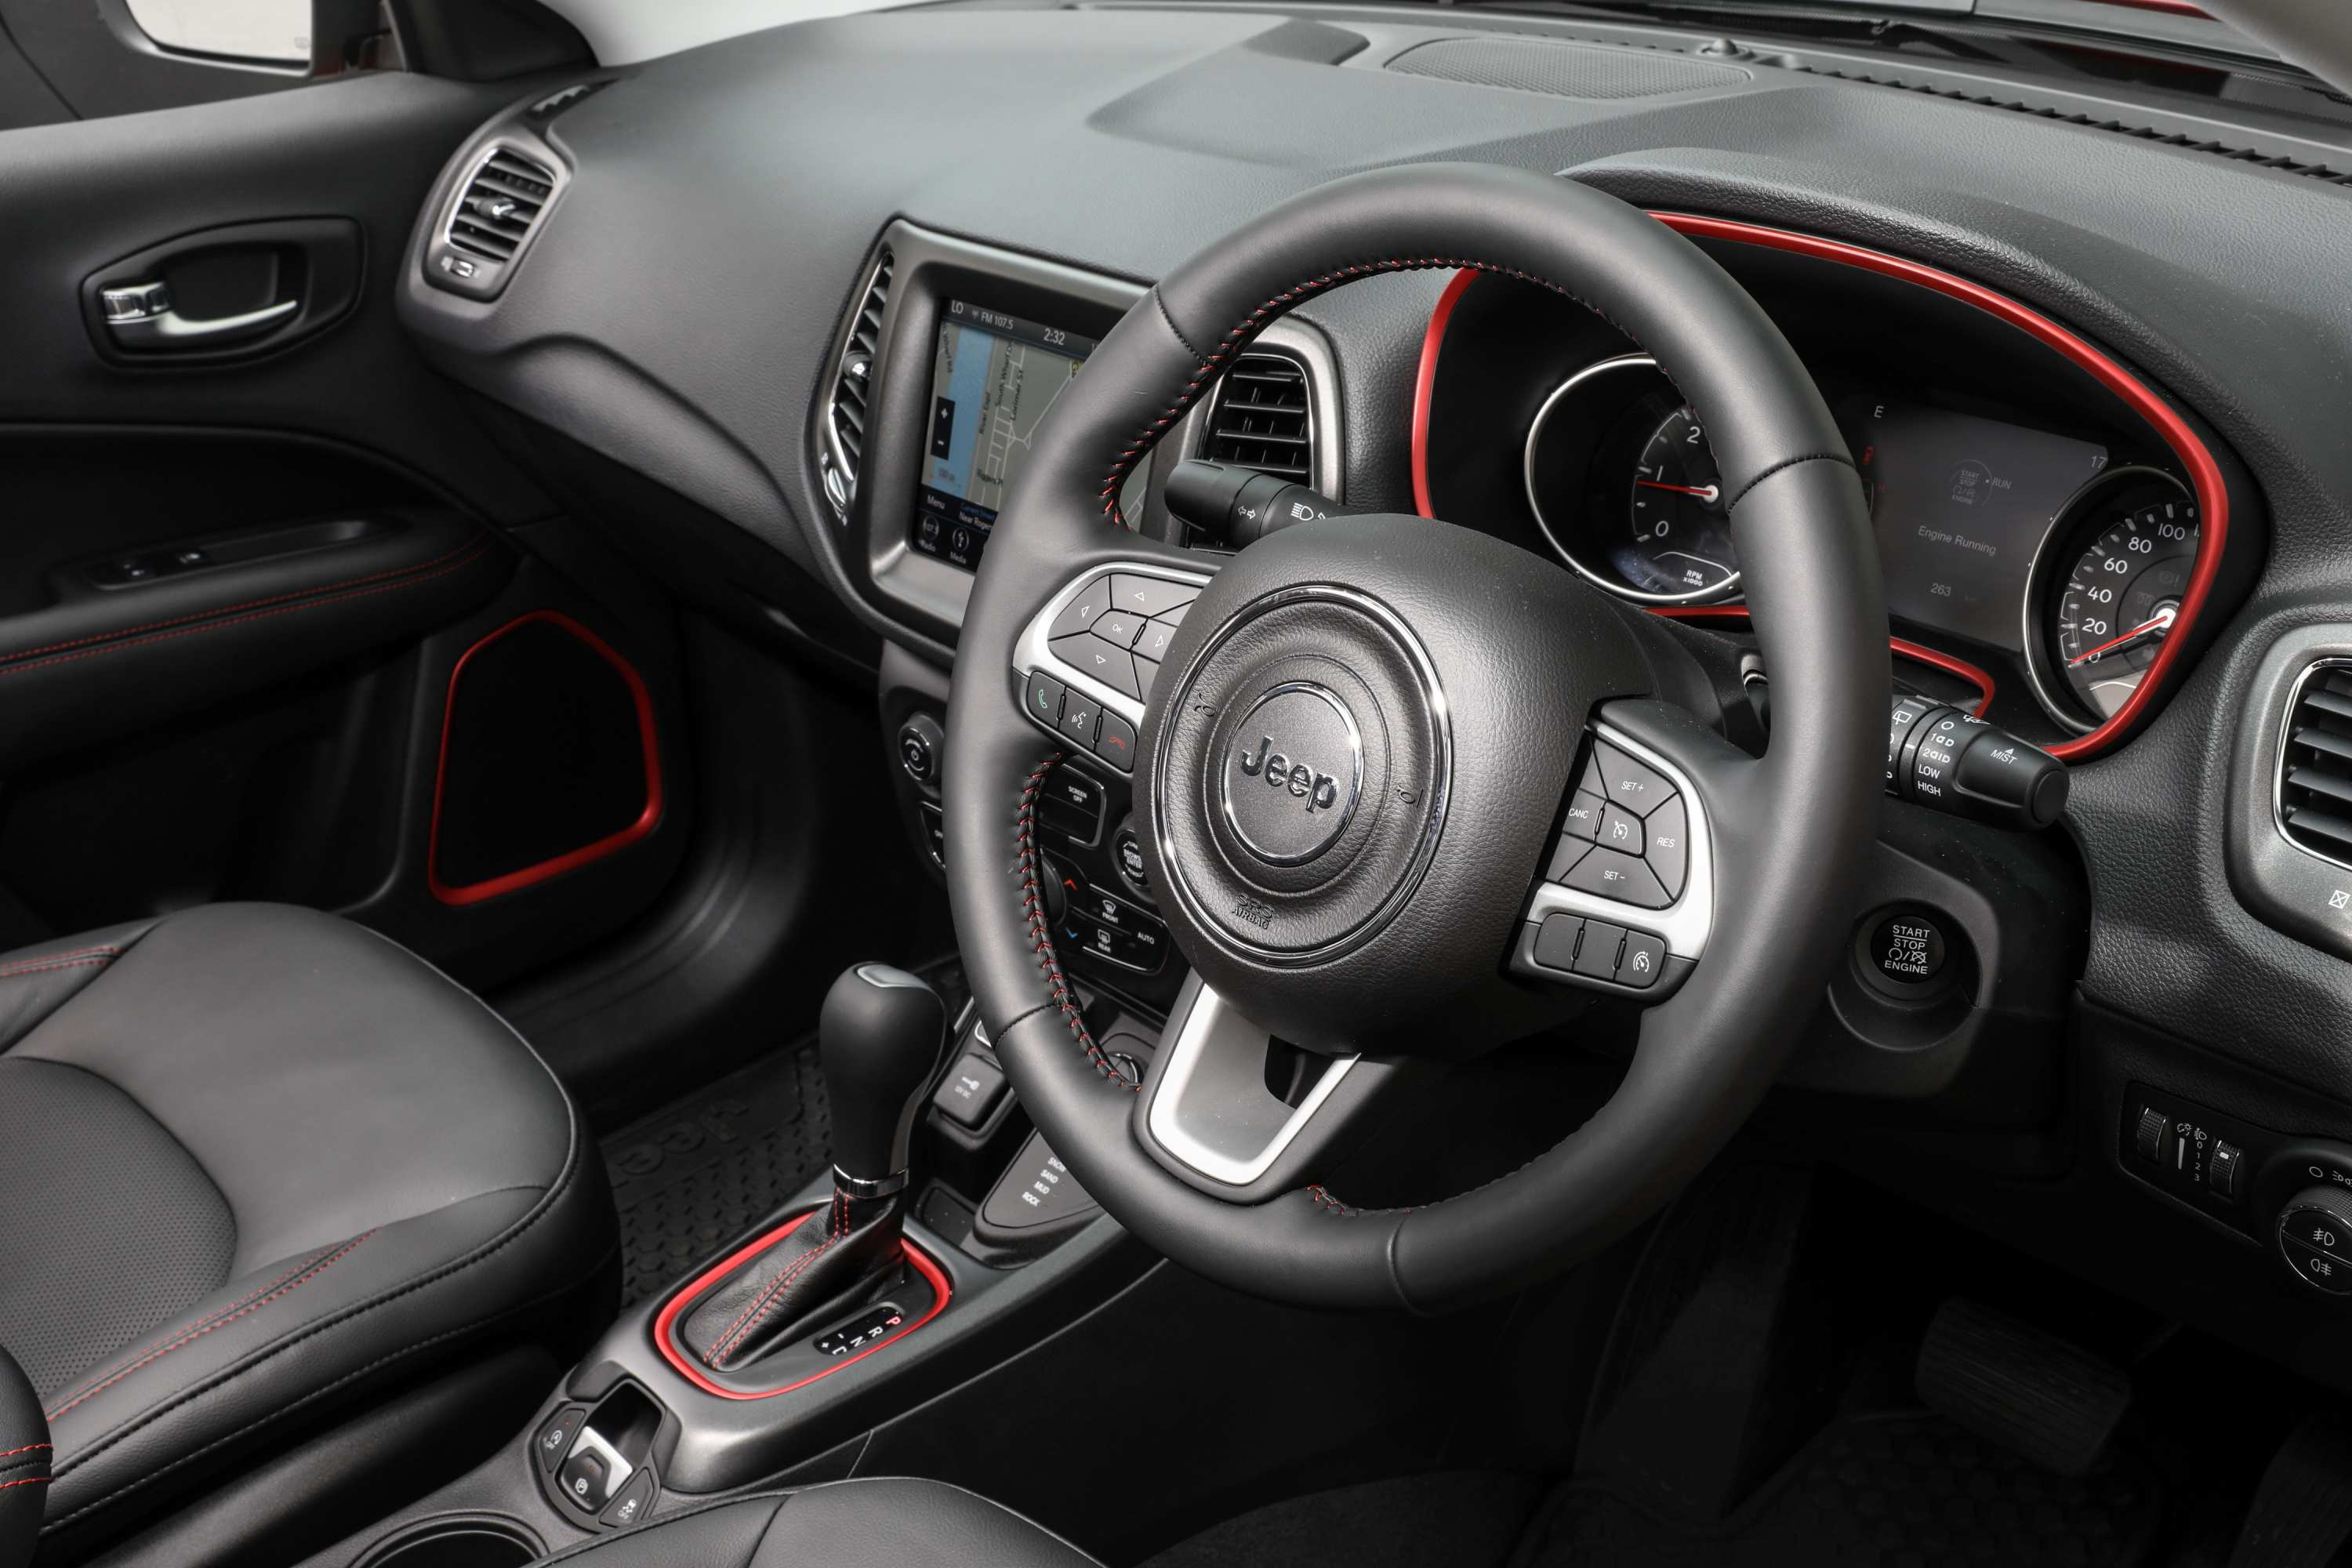 2020 Jeep Compass Trailhawk steering